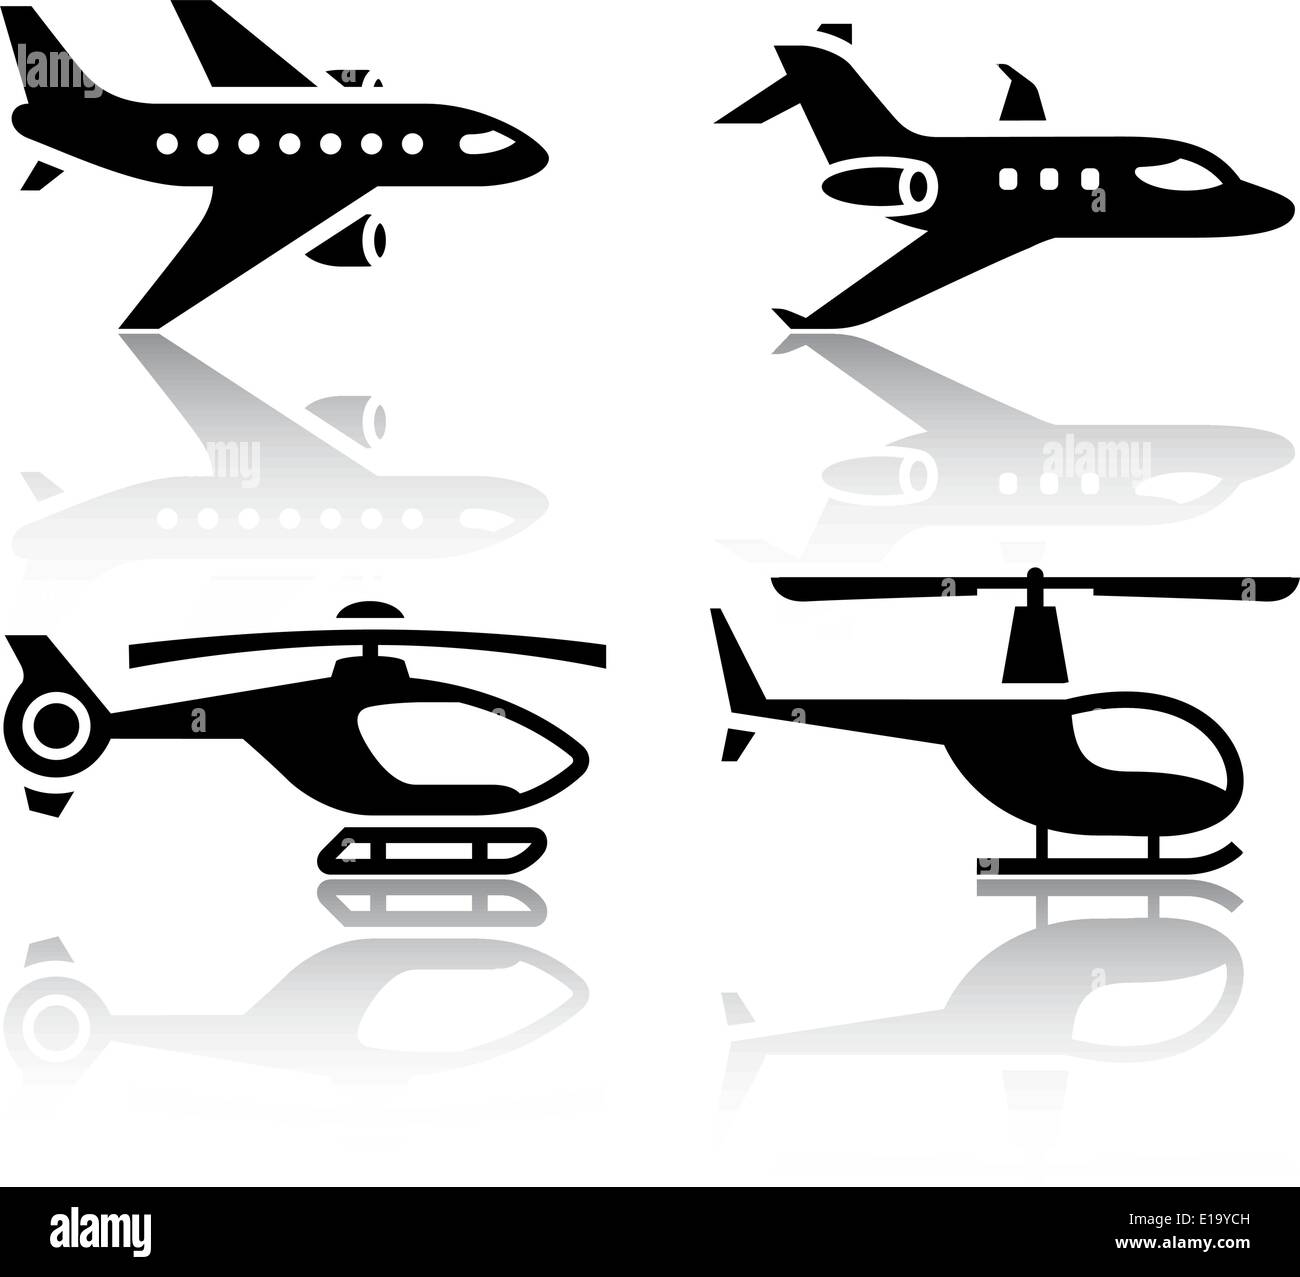 Set of transport icons - airbus and helicopter - Stock Vector